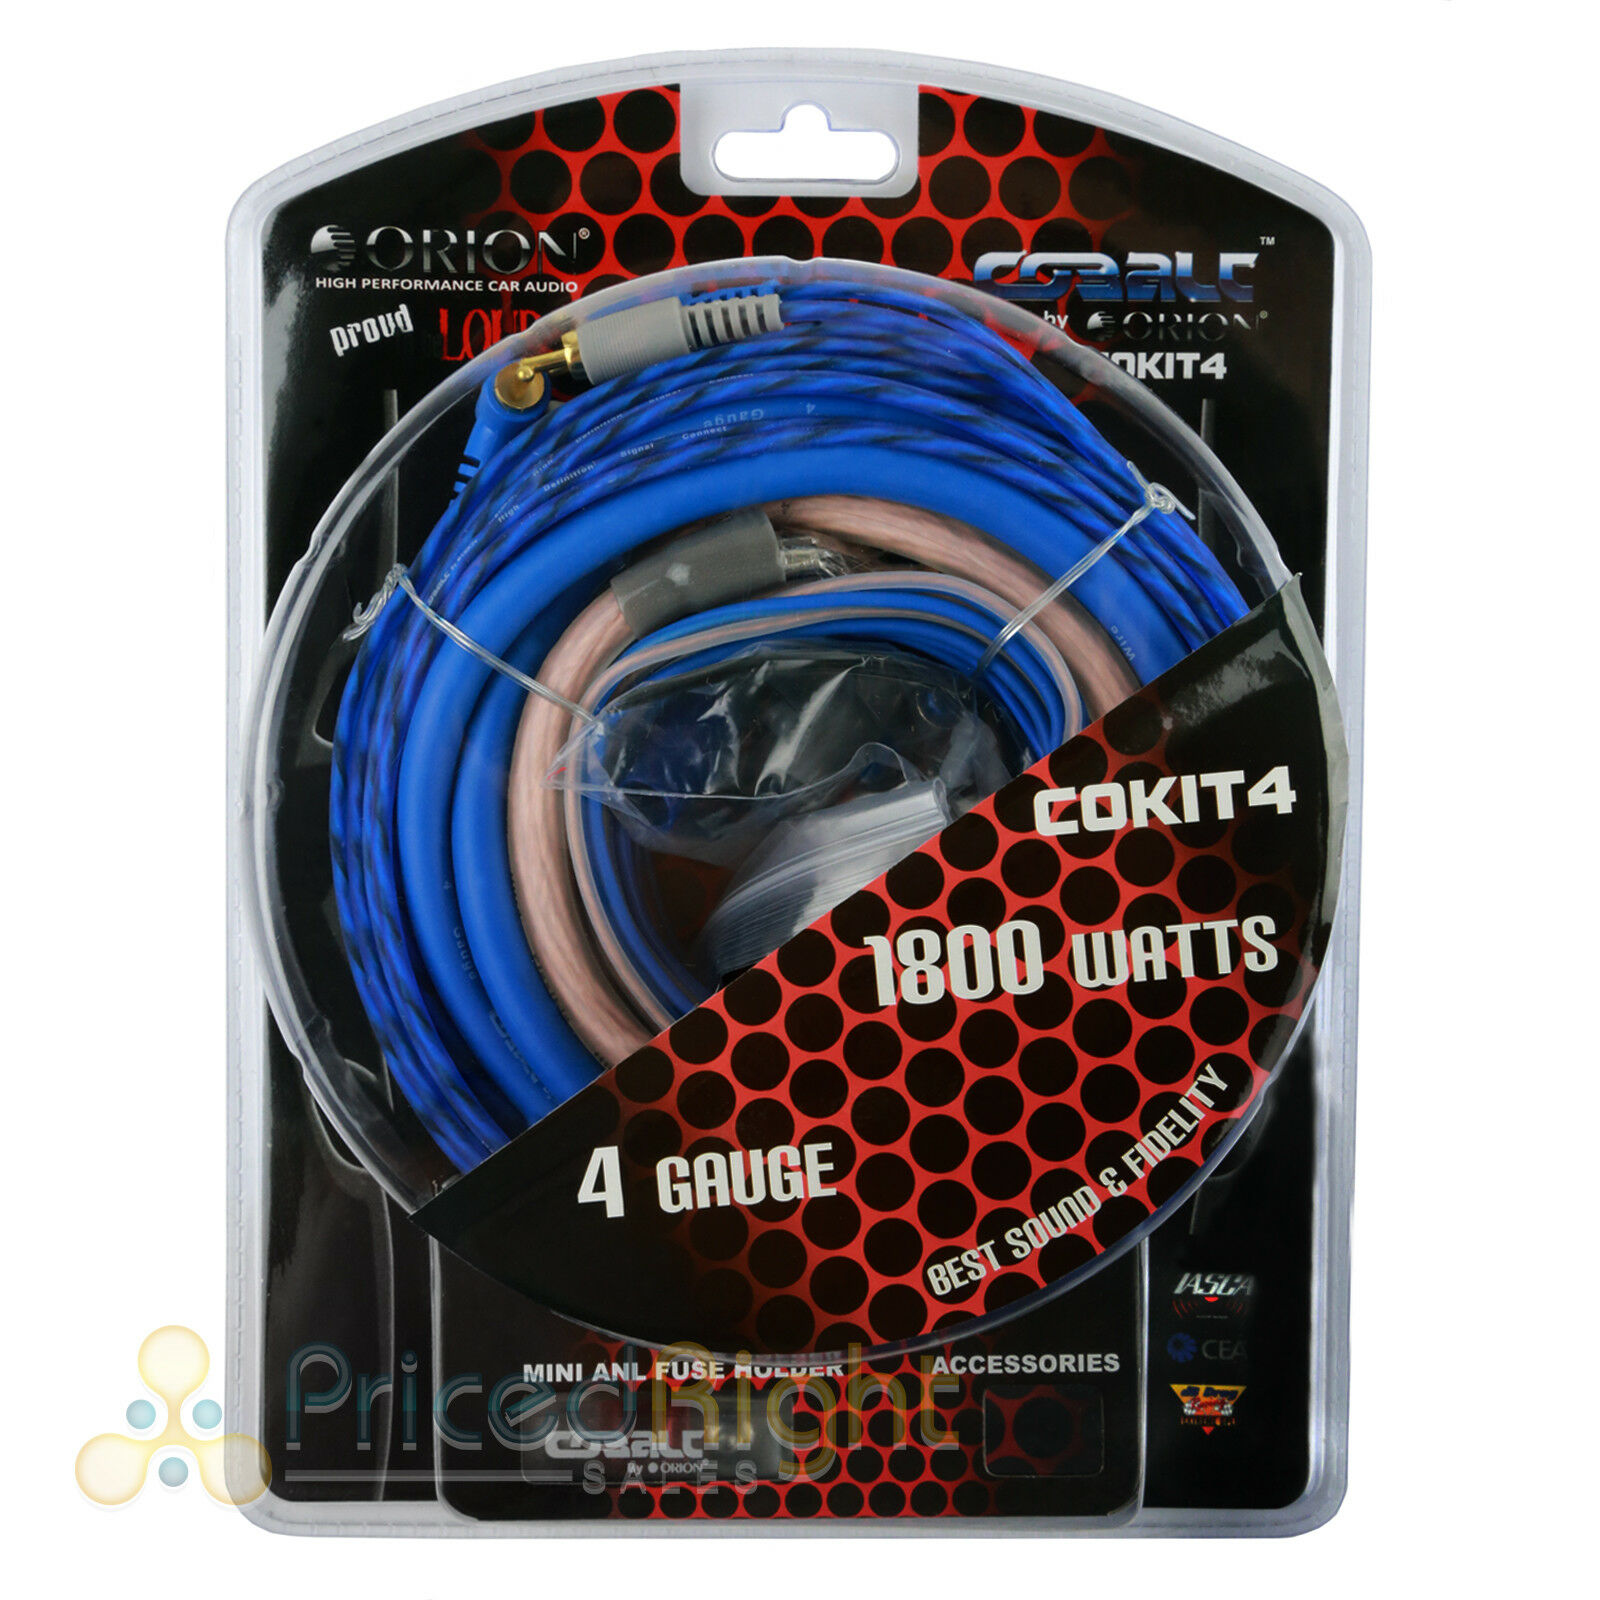 Orion 4 Awg Gauge Amp Kit Amplifier Install Wiring Complete Ga Car Amps Audio Wires 1 Of 9free Shipping